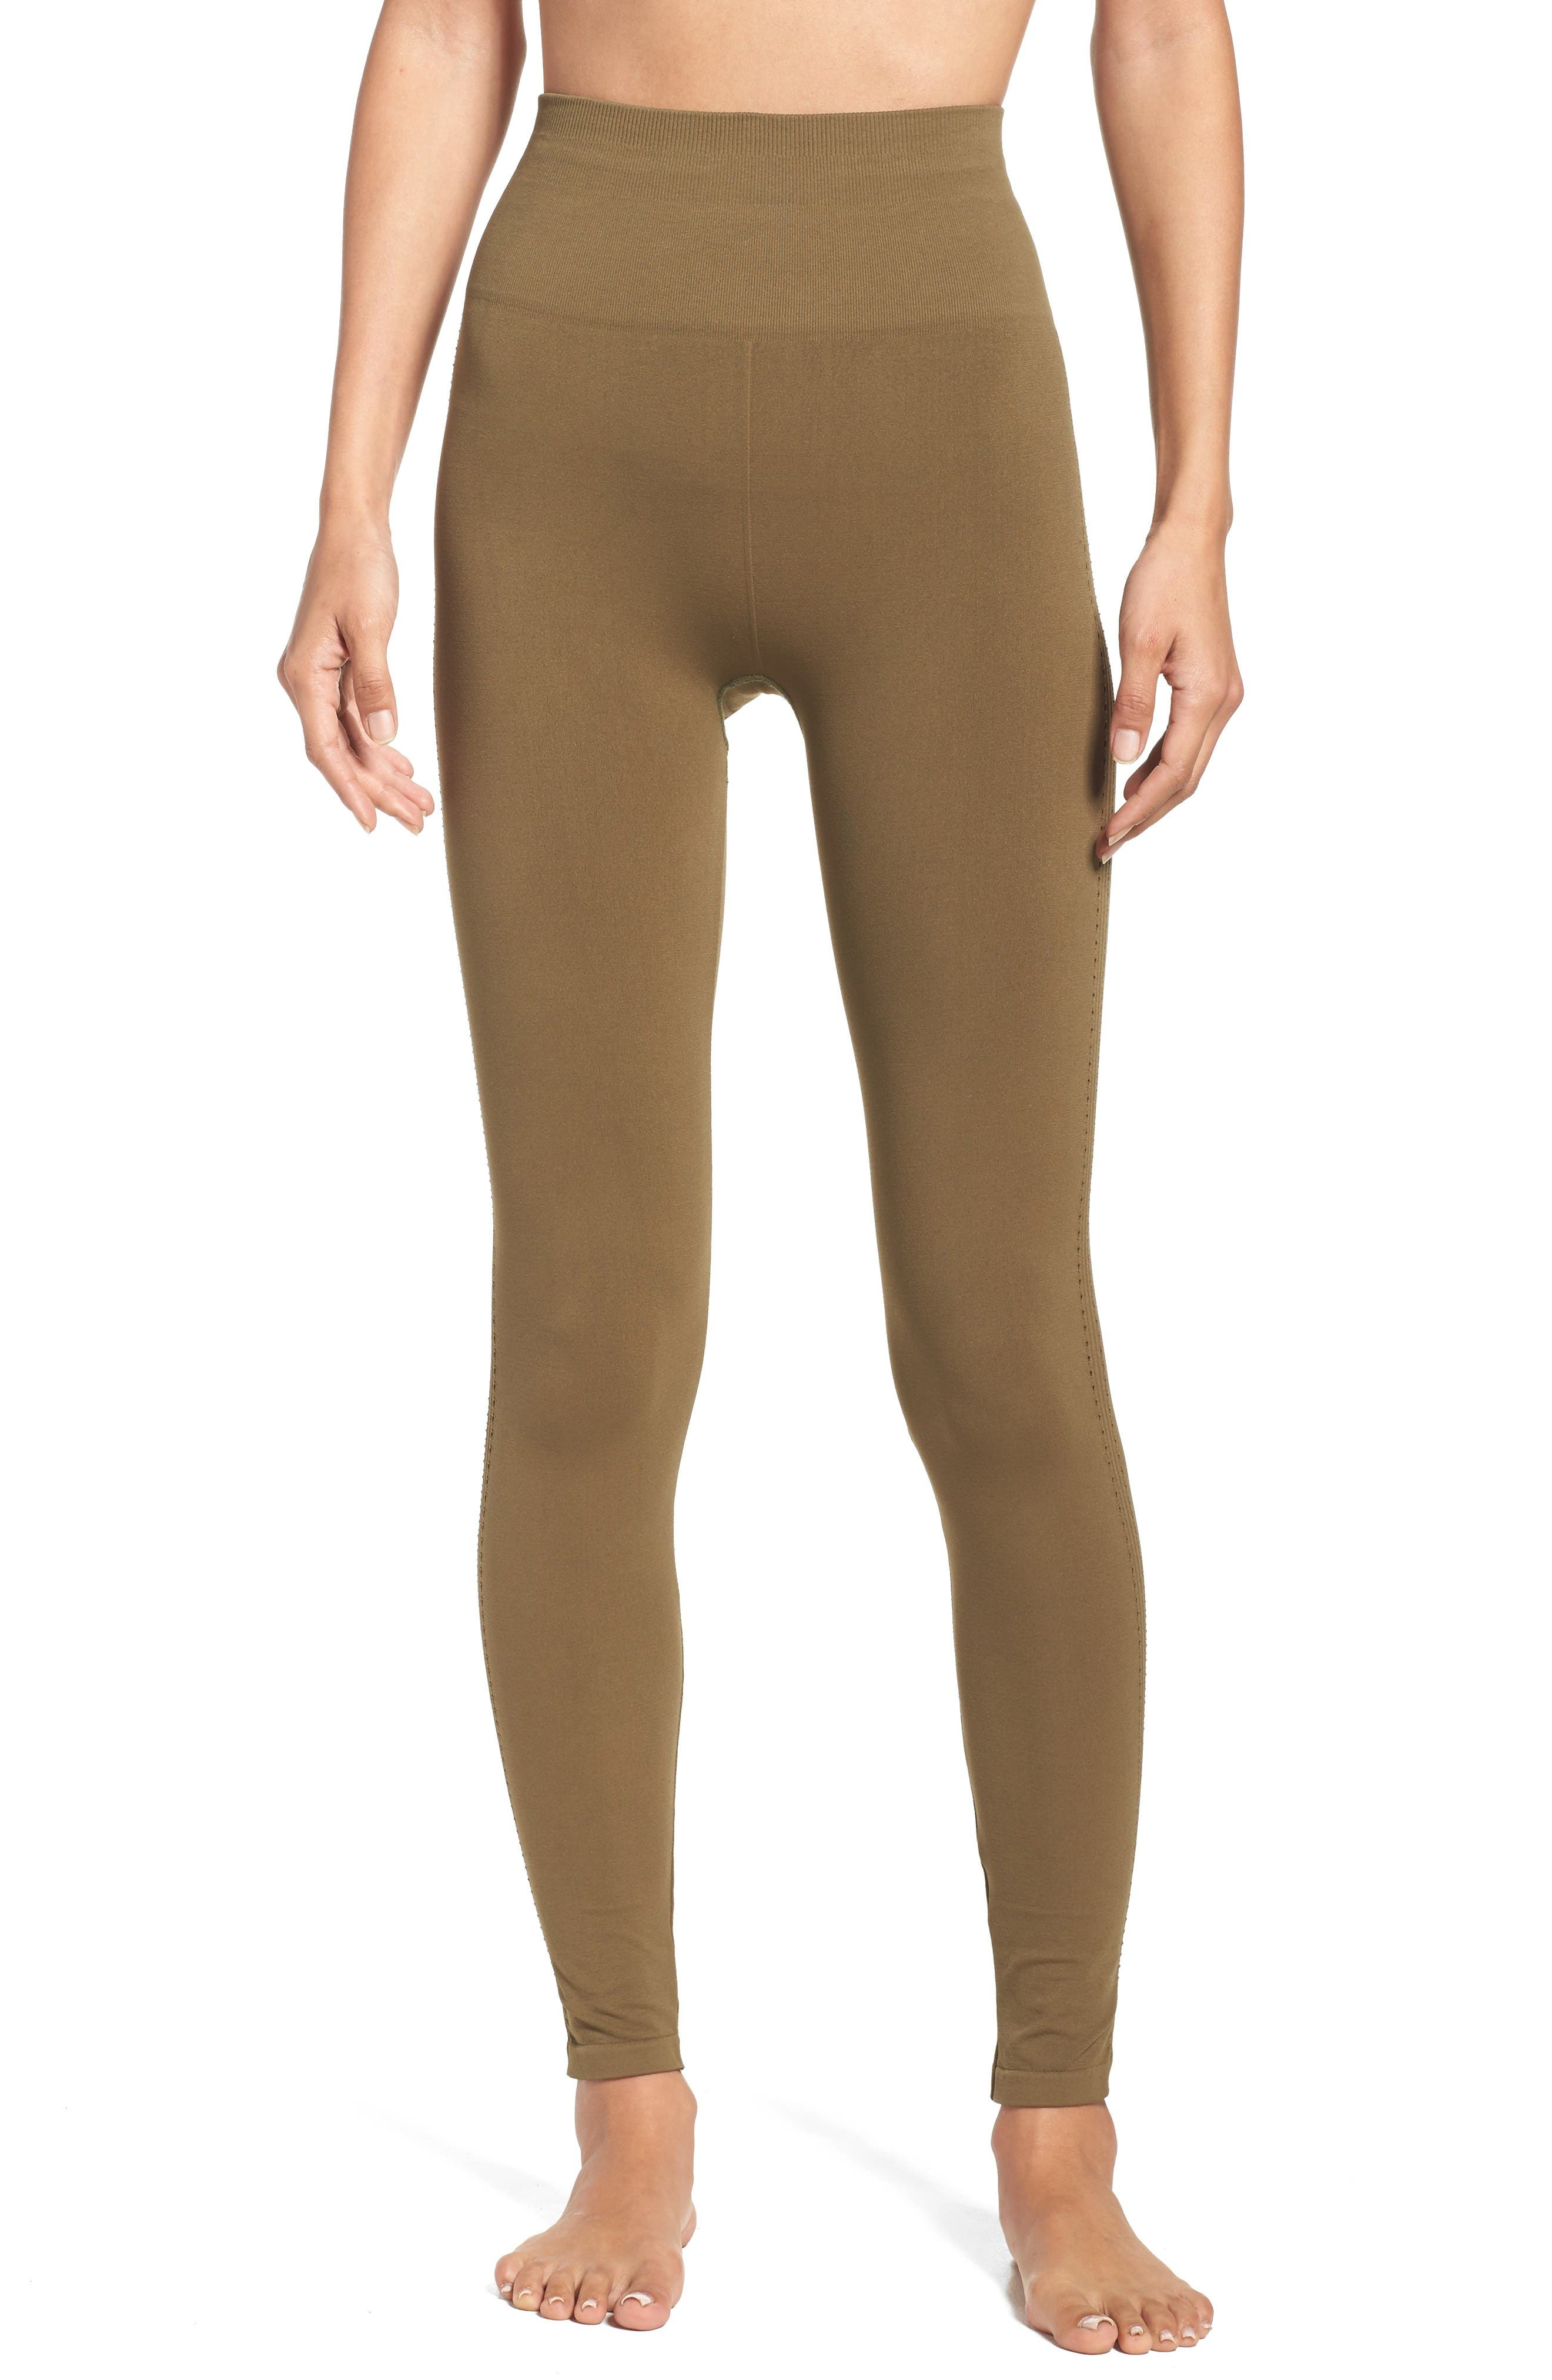 Free People FP Movement Barely There High Waist Leggings